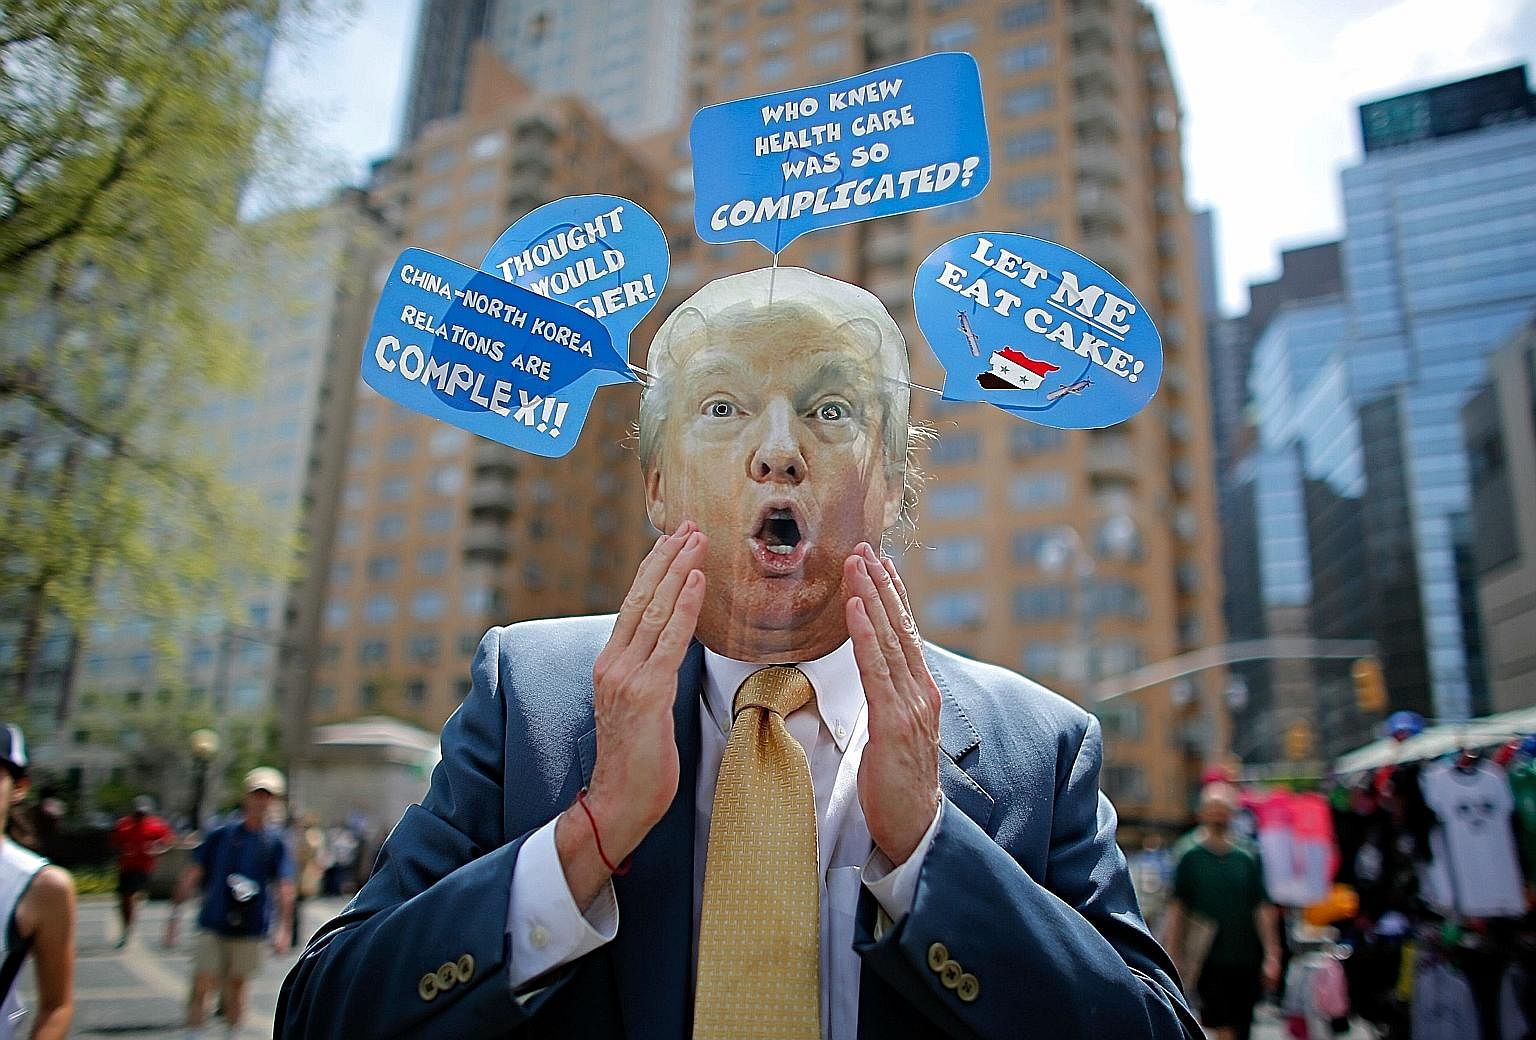 """A man in New York wearing a Donald Trump mask taking part in the """"100 Days of Failure"""" protest on April 29. The surprises from the Trump administration's first 100 days have been both positive and negative."""